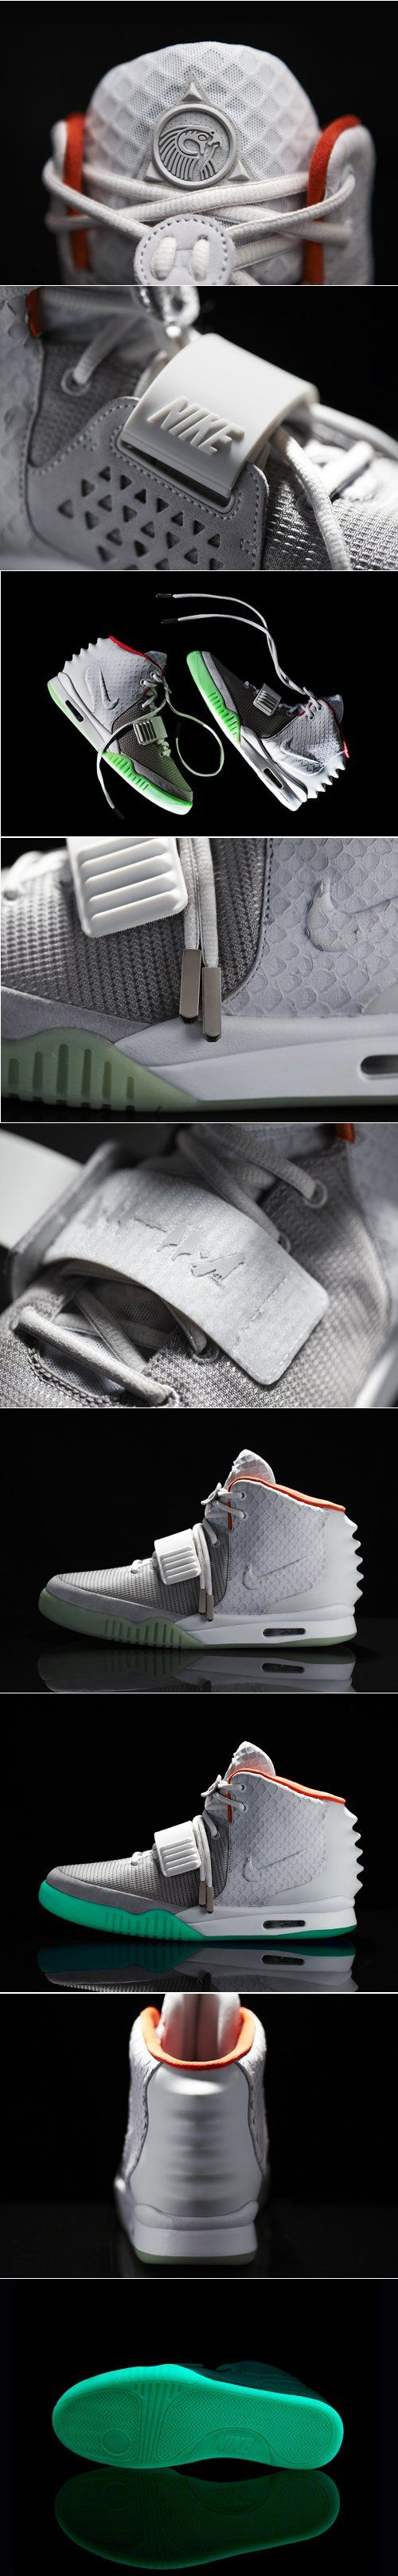 Nike Air Yeezy 2 by Kanye West